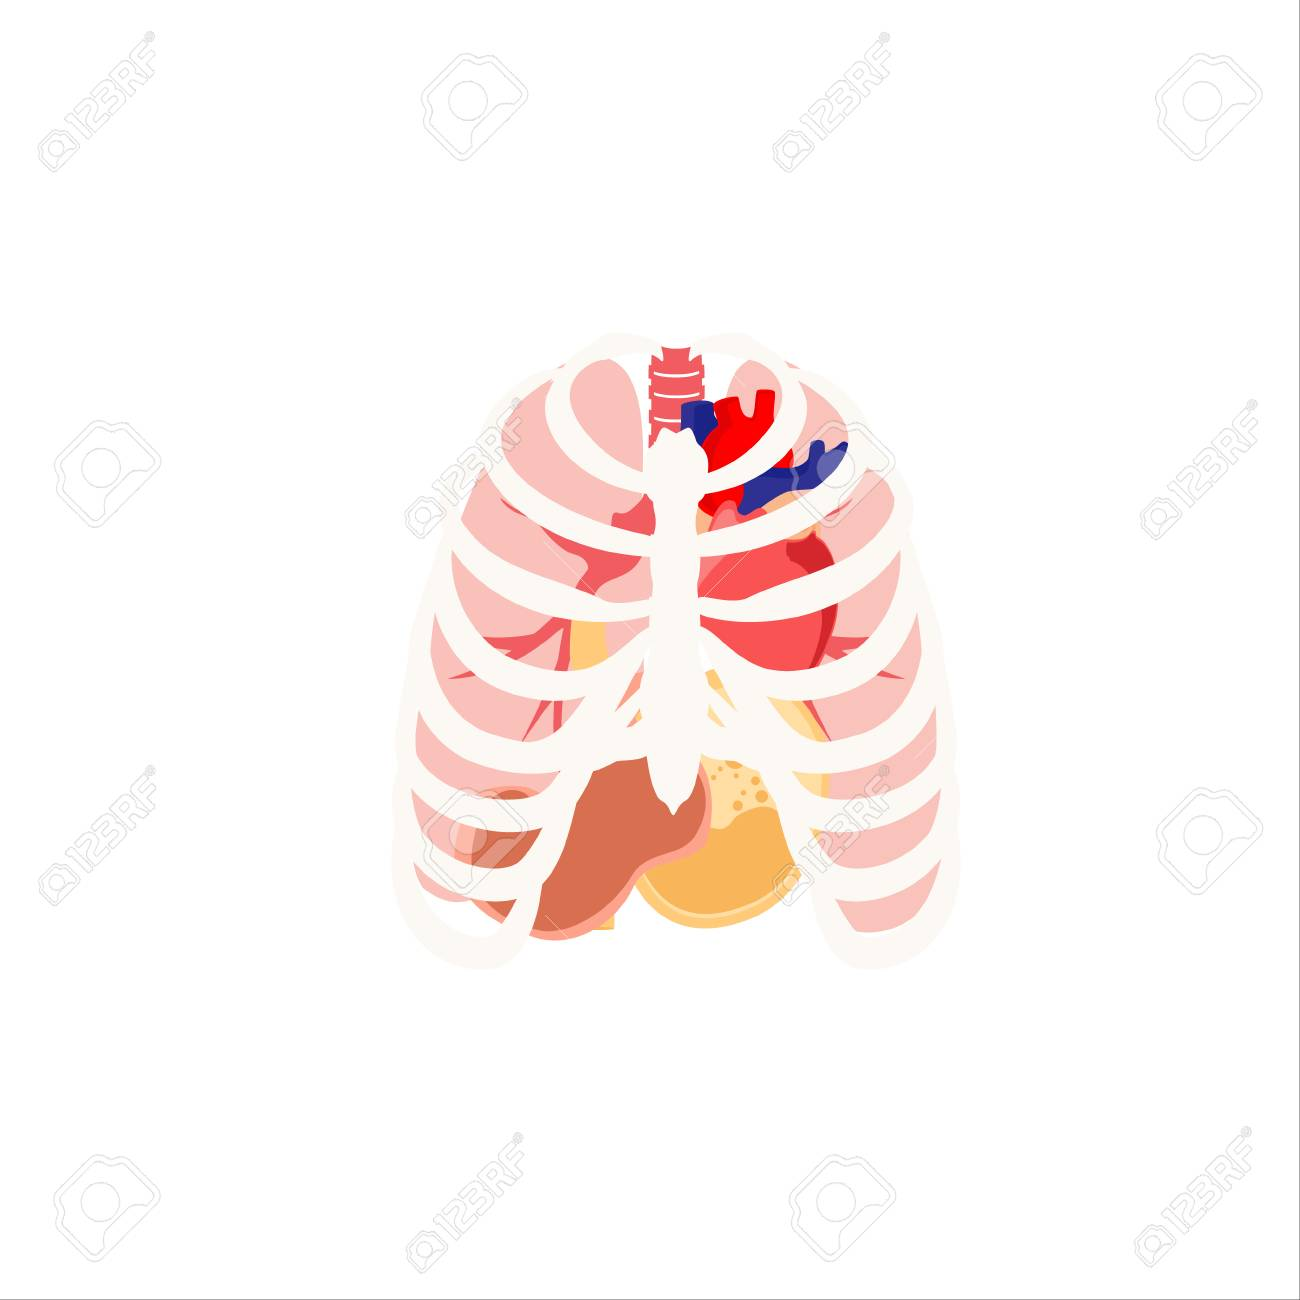 Vector Illustration Of Human Organs. Rib Cage, Lungs, Heart And ...